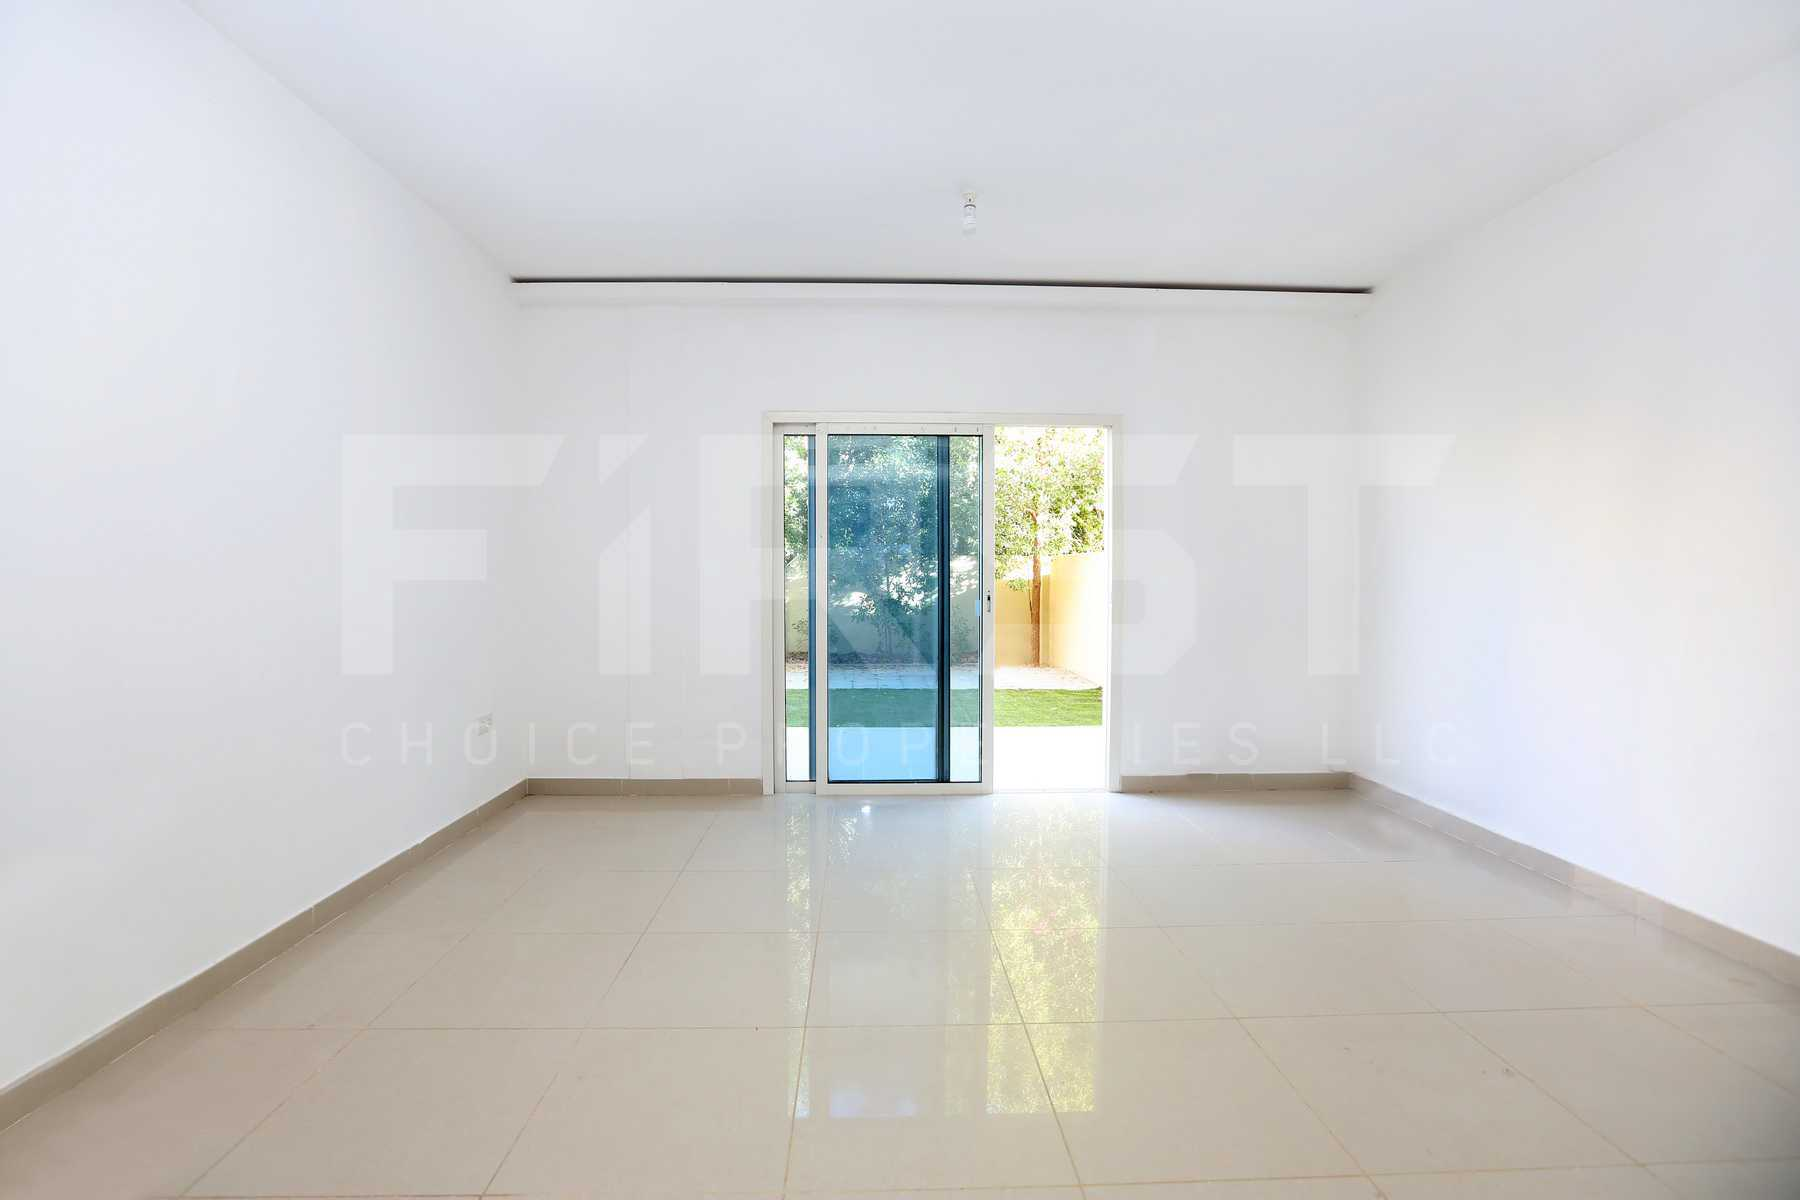 Internal Photo of 2 Bedroom Villa in Al Reef Villas  Al Reef Abu Dhabi UAE 170.2 sq.m 1832 sq.ft (6).jpg